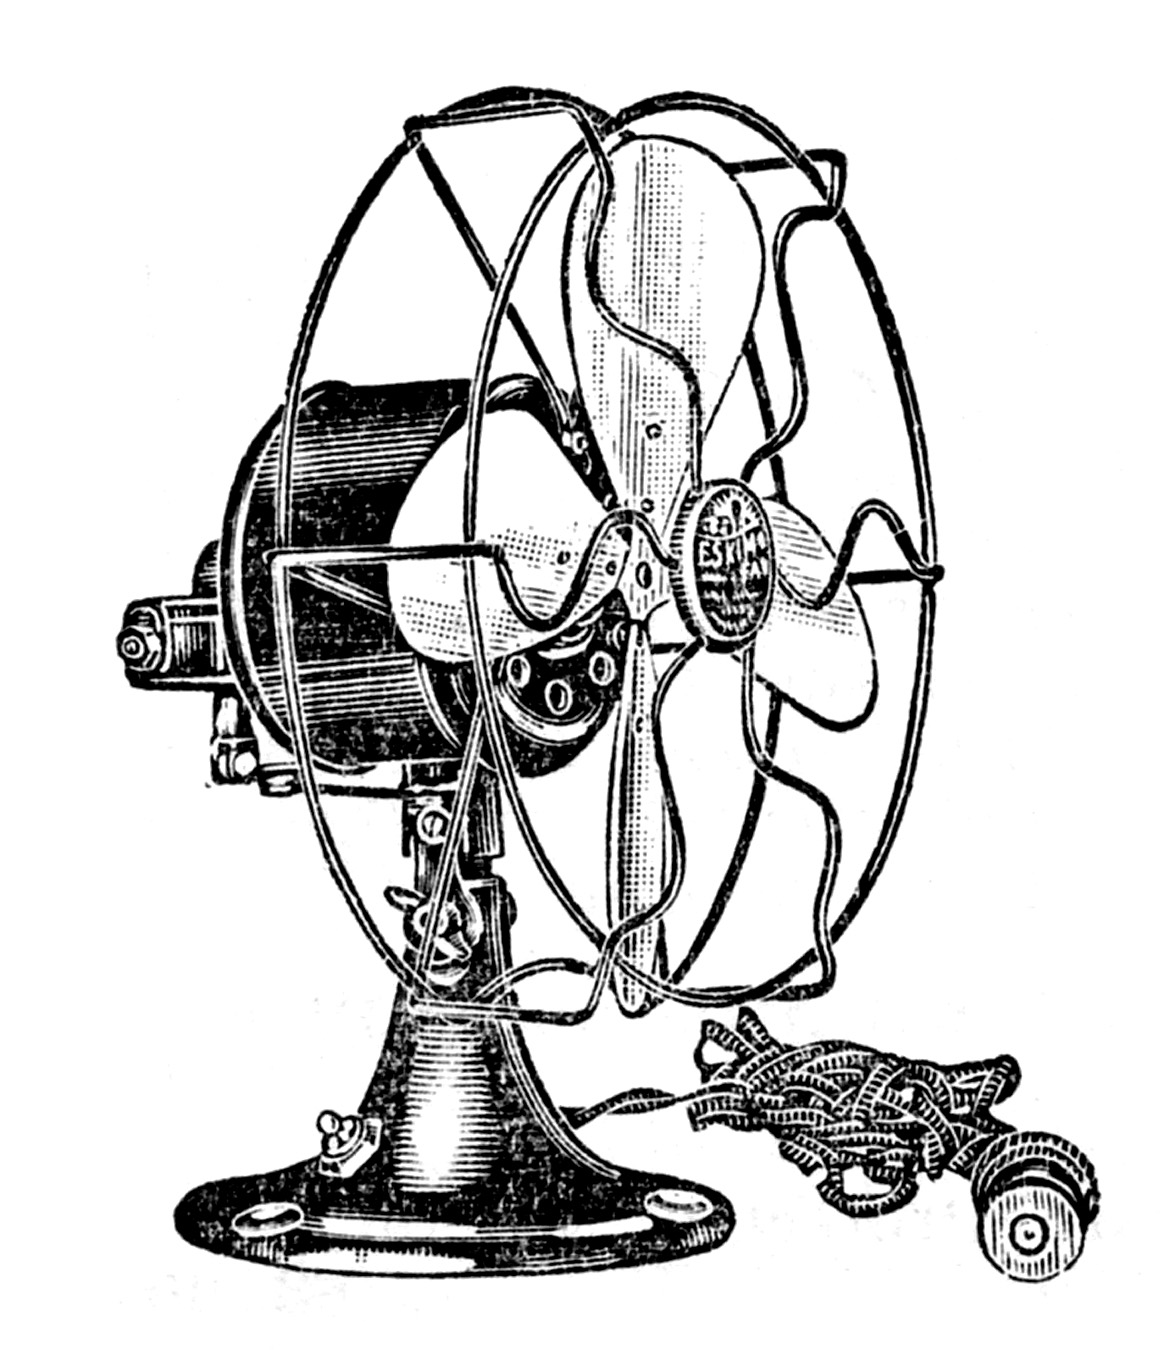 Vintage Fan vintage clip art - electric fans - steampunk - the graphics fairy